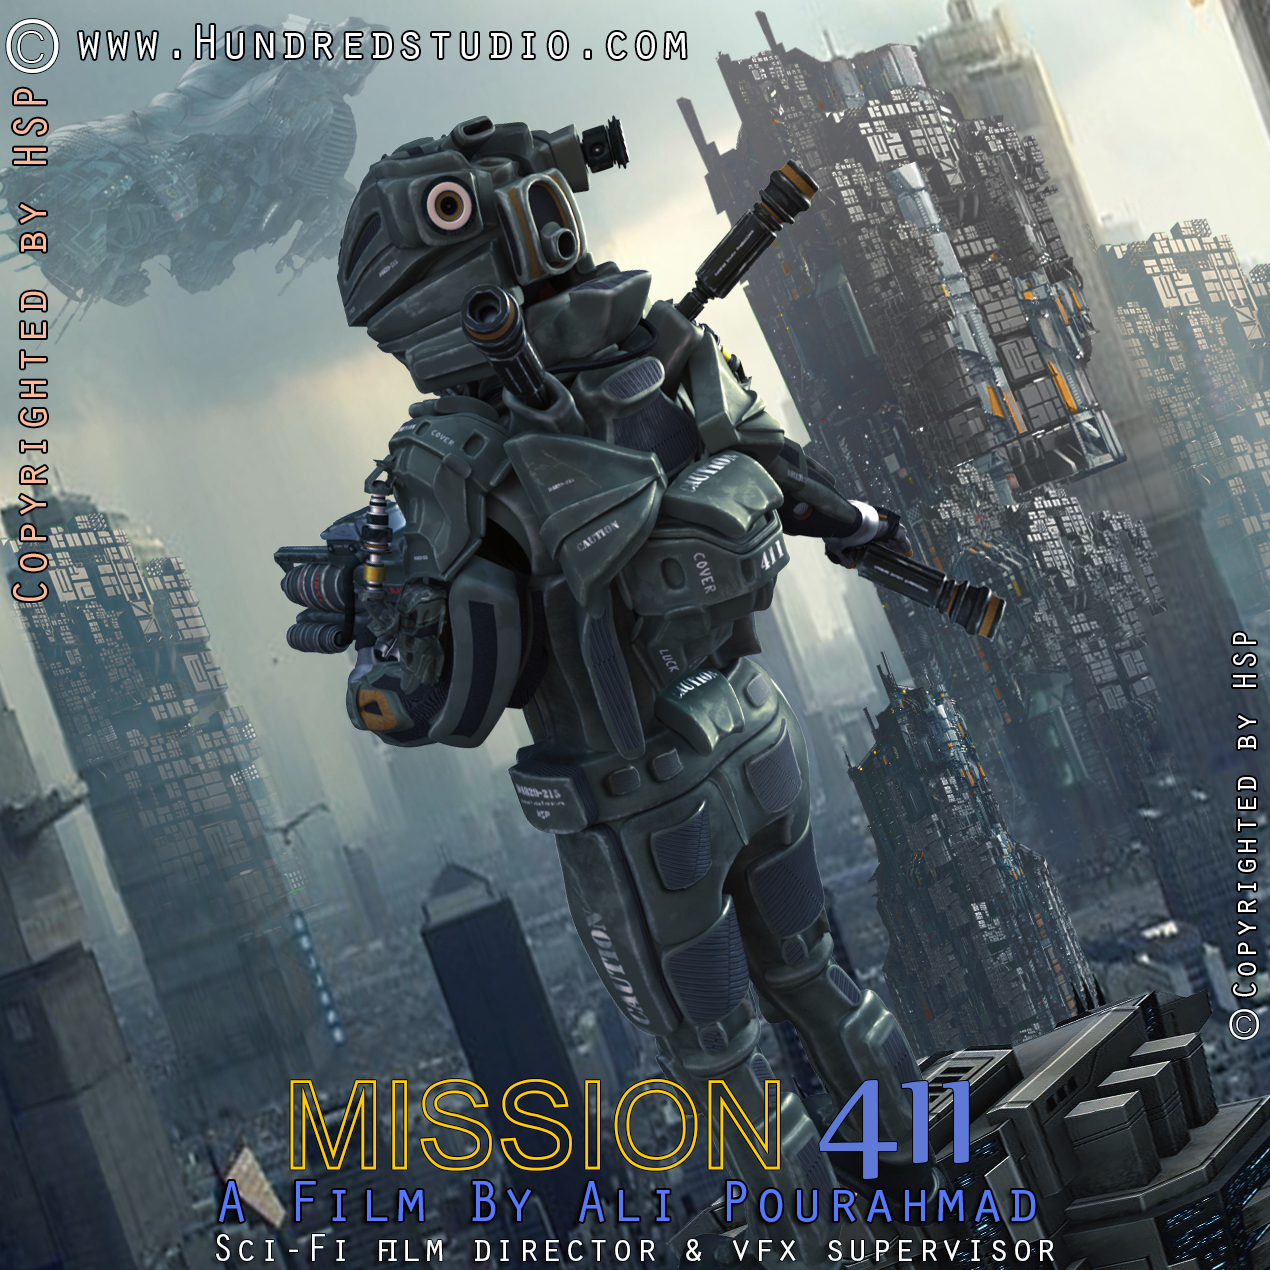 New Sci Fi Film Quot Mission 411 Quot Directed By Ali Pourahmad